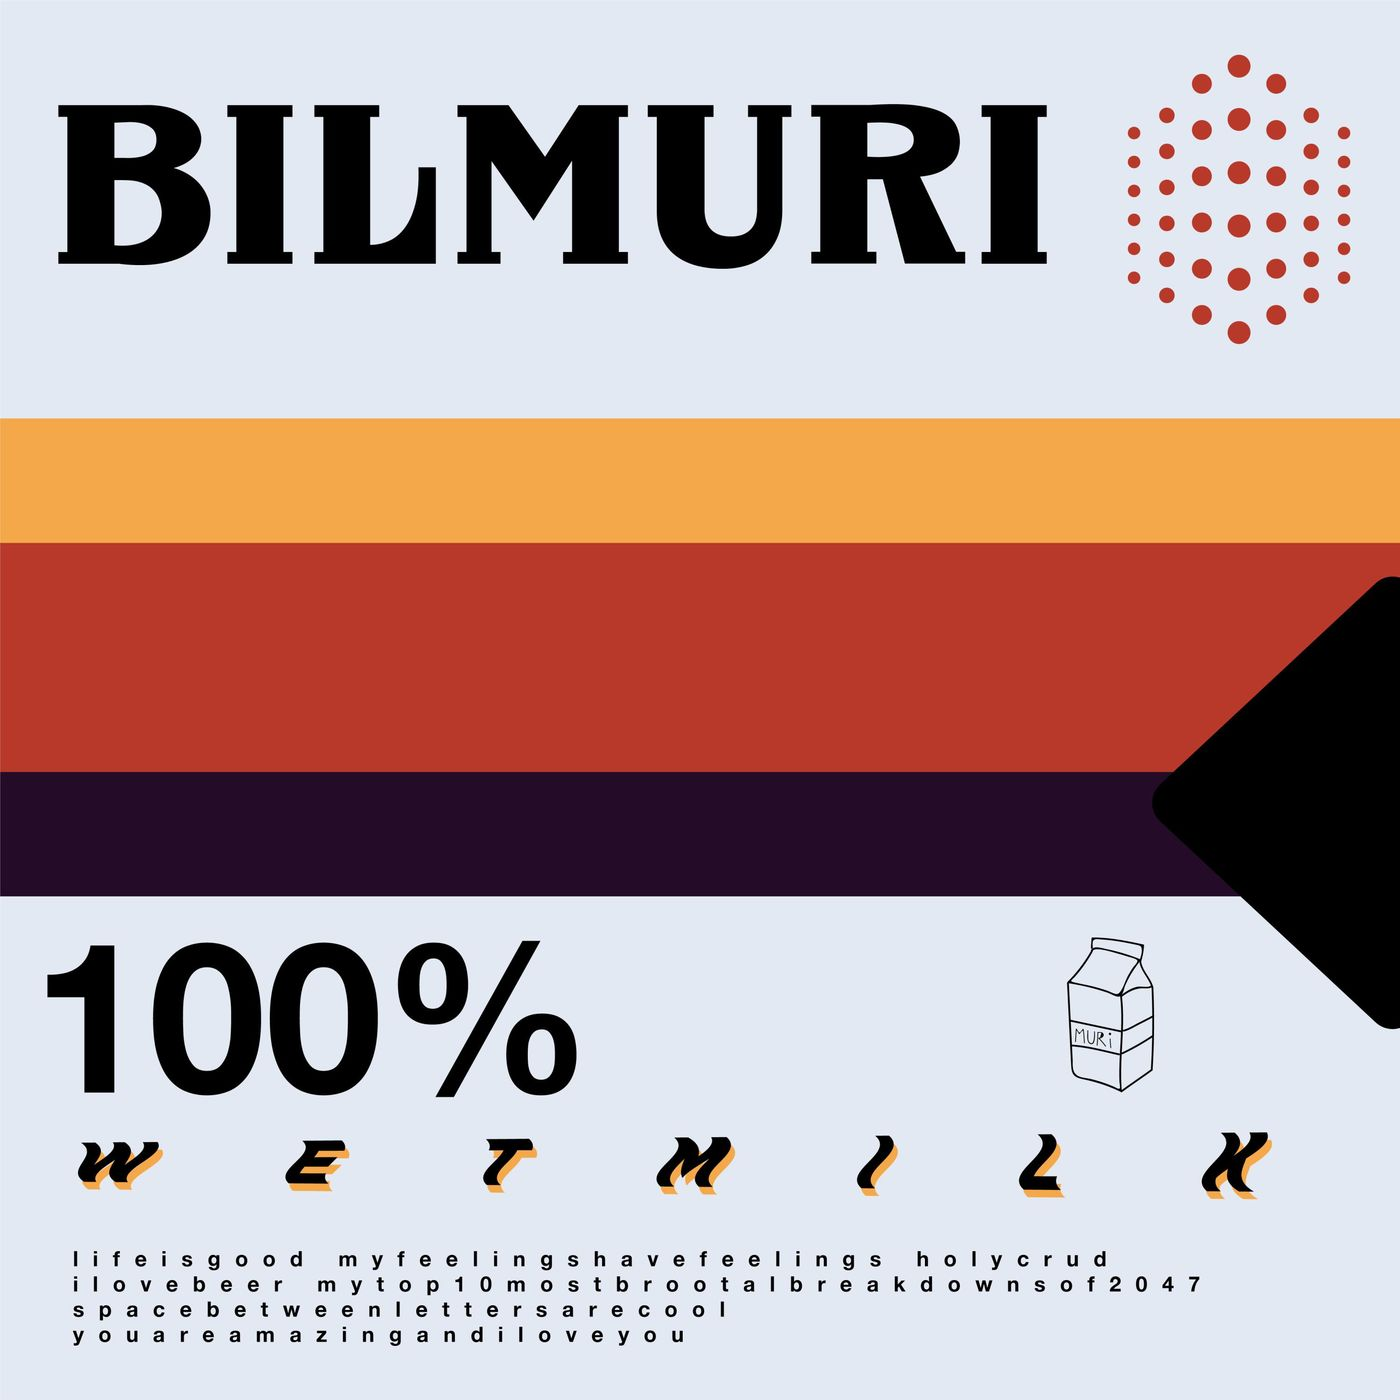 Bilmuri - wet milk [EP] (2019)